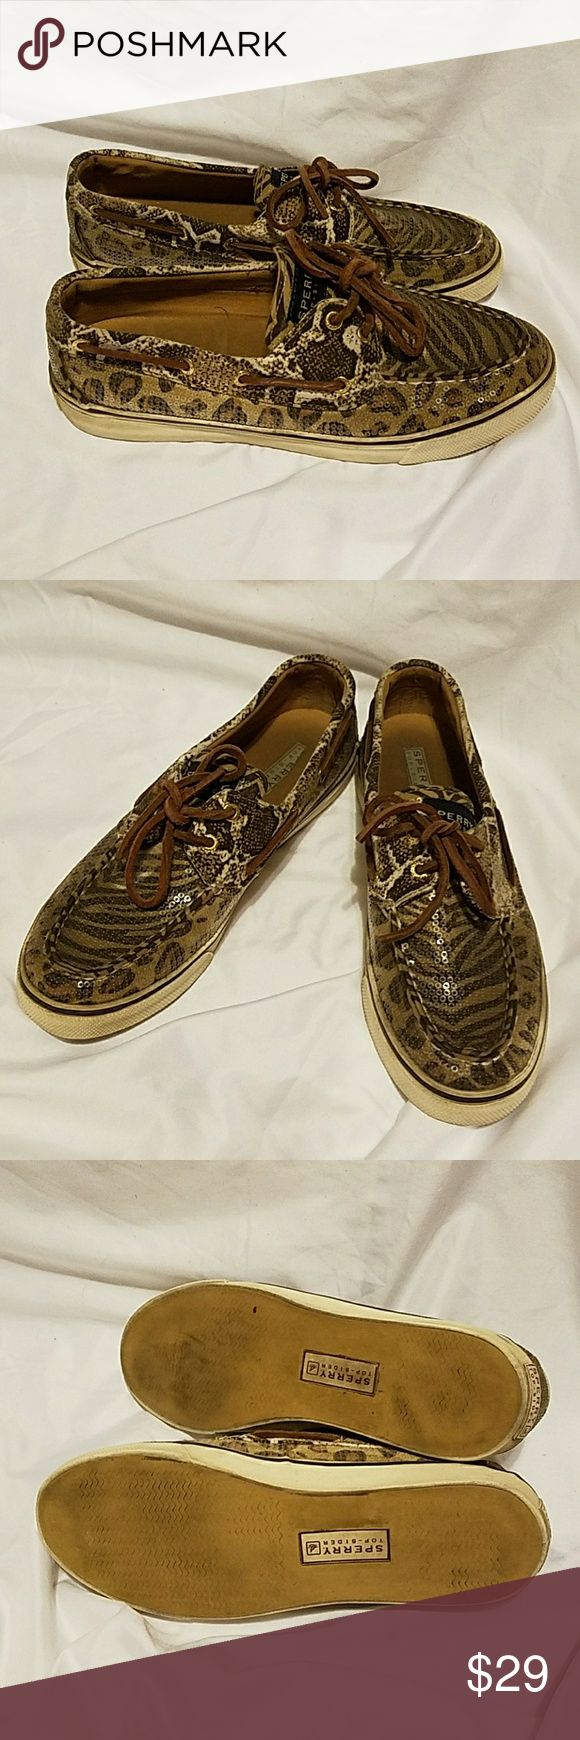 Sperry top- sider Shoes. Sperry top sider shoes.Size 7.5.Animal print,sequins.used some sign of wear foot print,and need cleaning.Still in a good condition.Make me an offer. Sperry Top-Sider Shoes